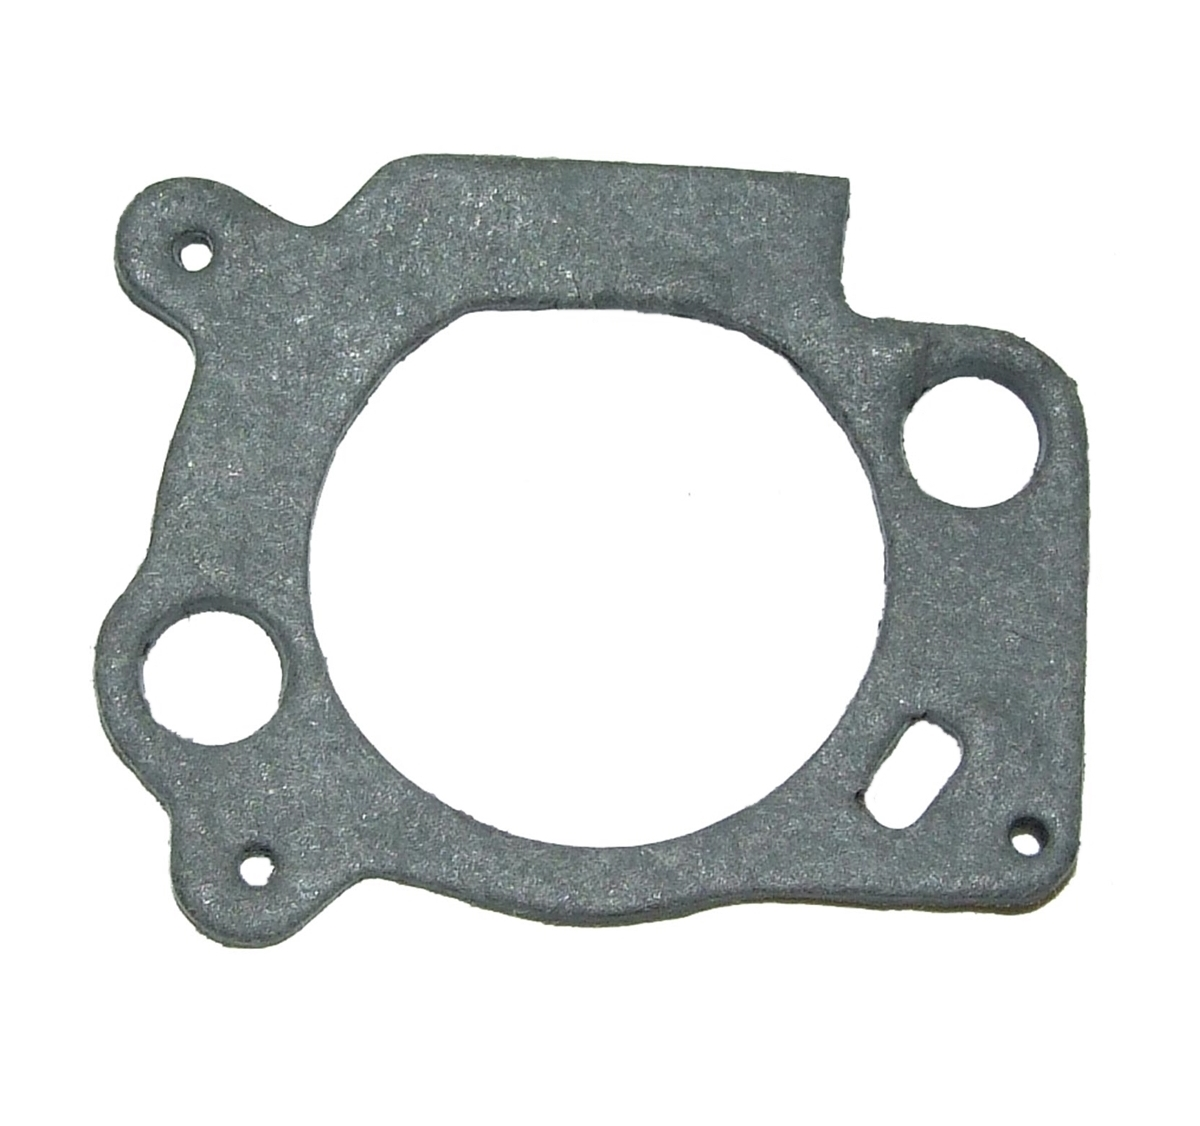 Tractor Air Cleaner Gasket : Briggs stratton intek e dov ex